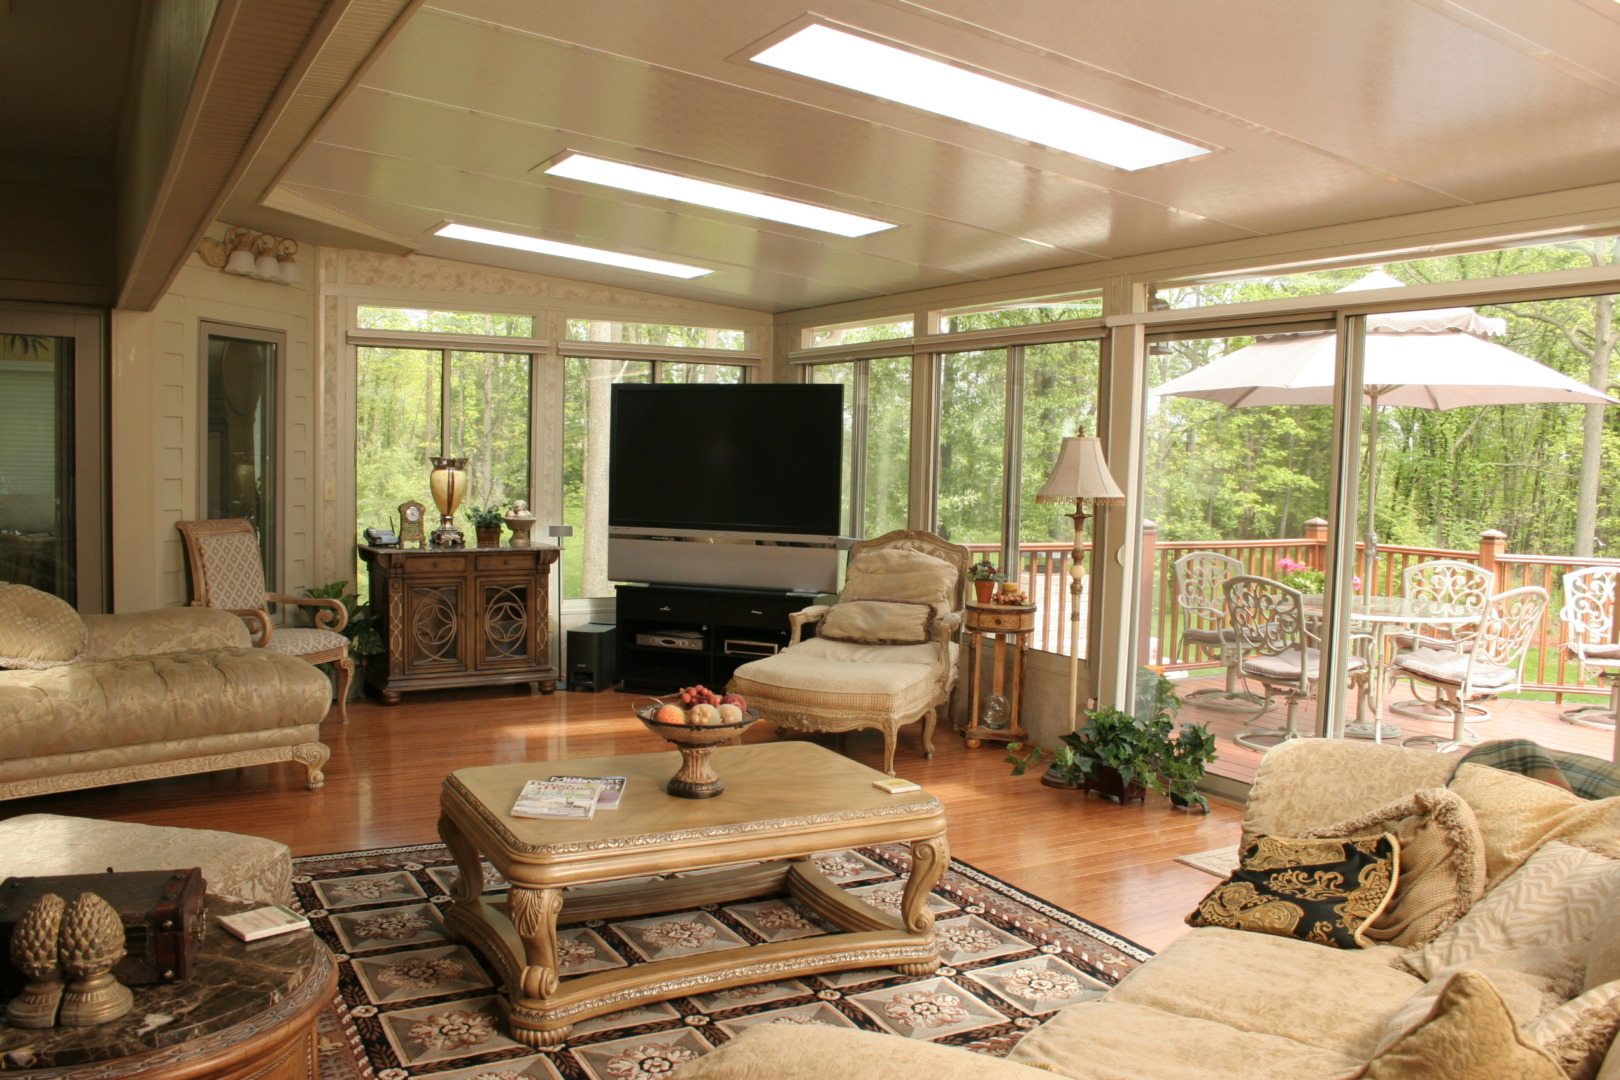 Sunroom Off Kitchen Design Ideas Osom Living Room Picture Sun Room Ideas